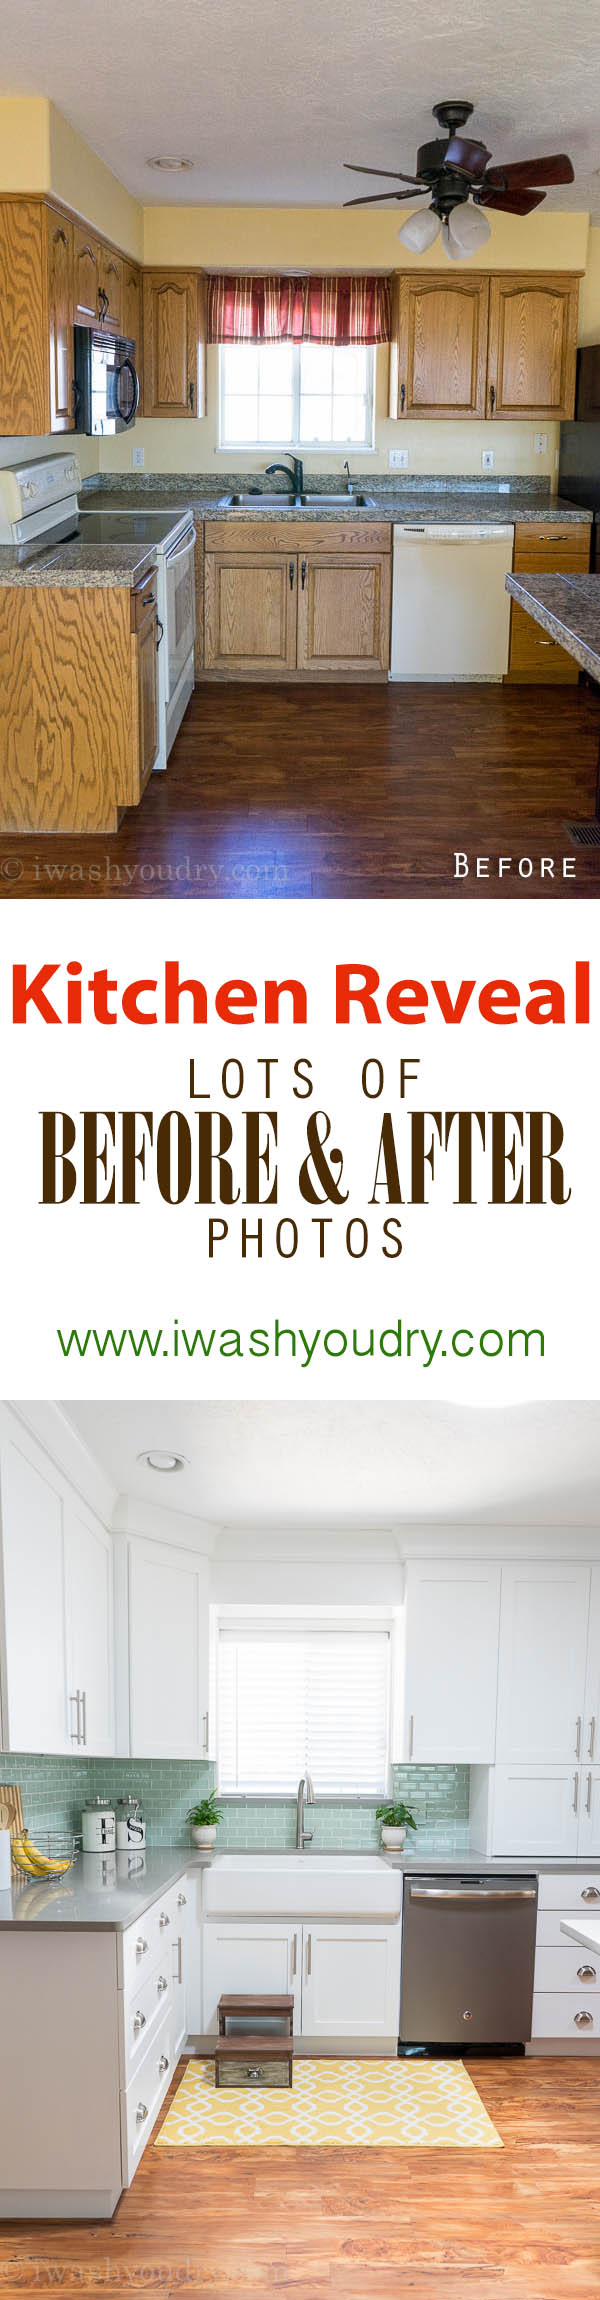 Amazing Before and After pictures of a Kitchen renovation!